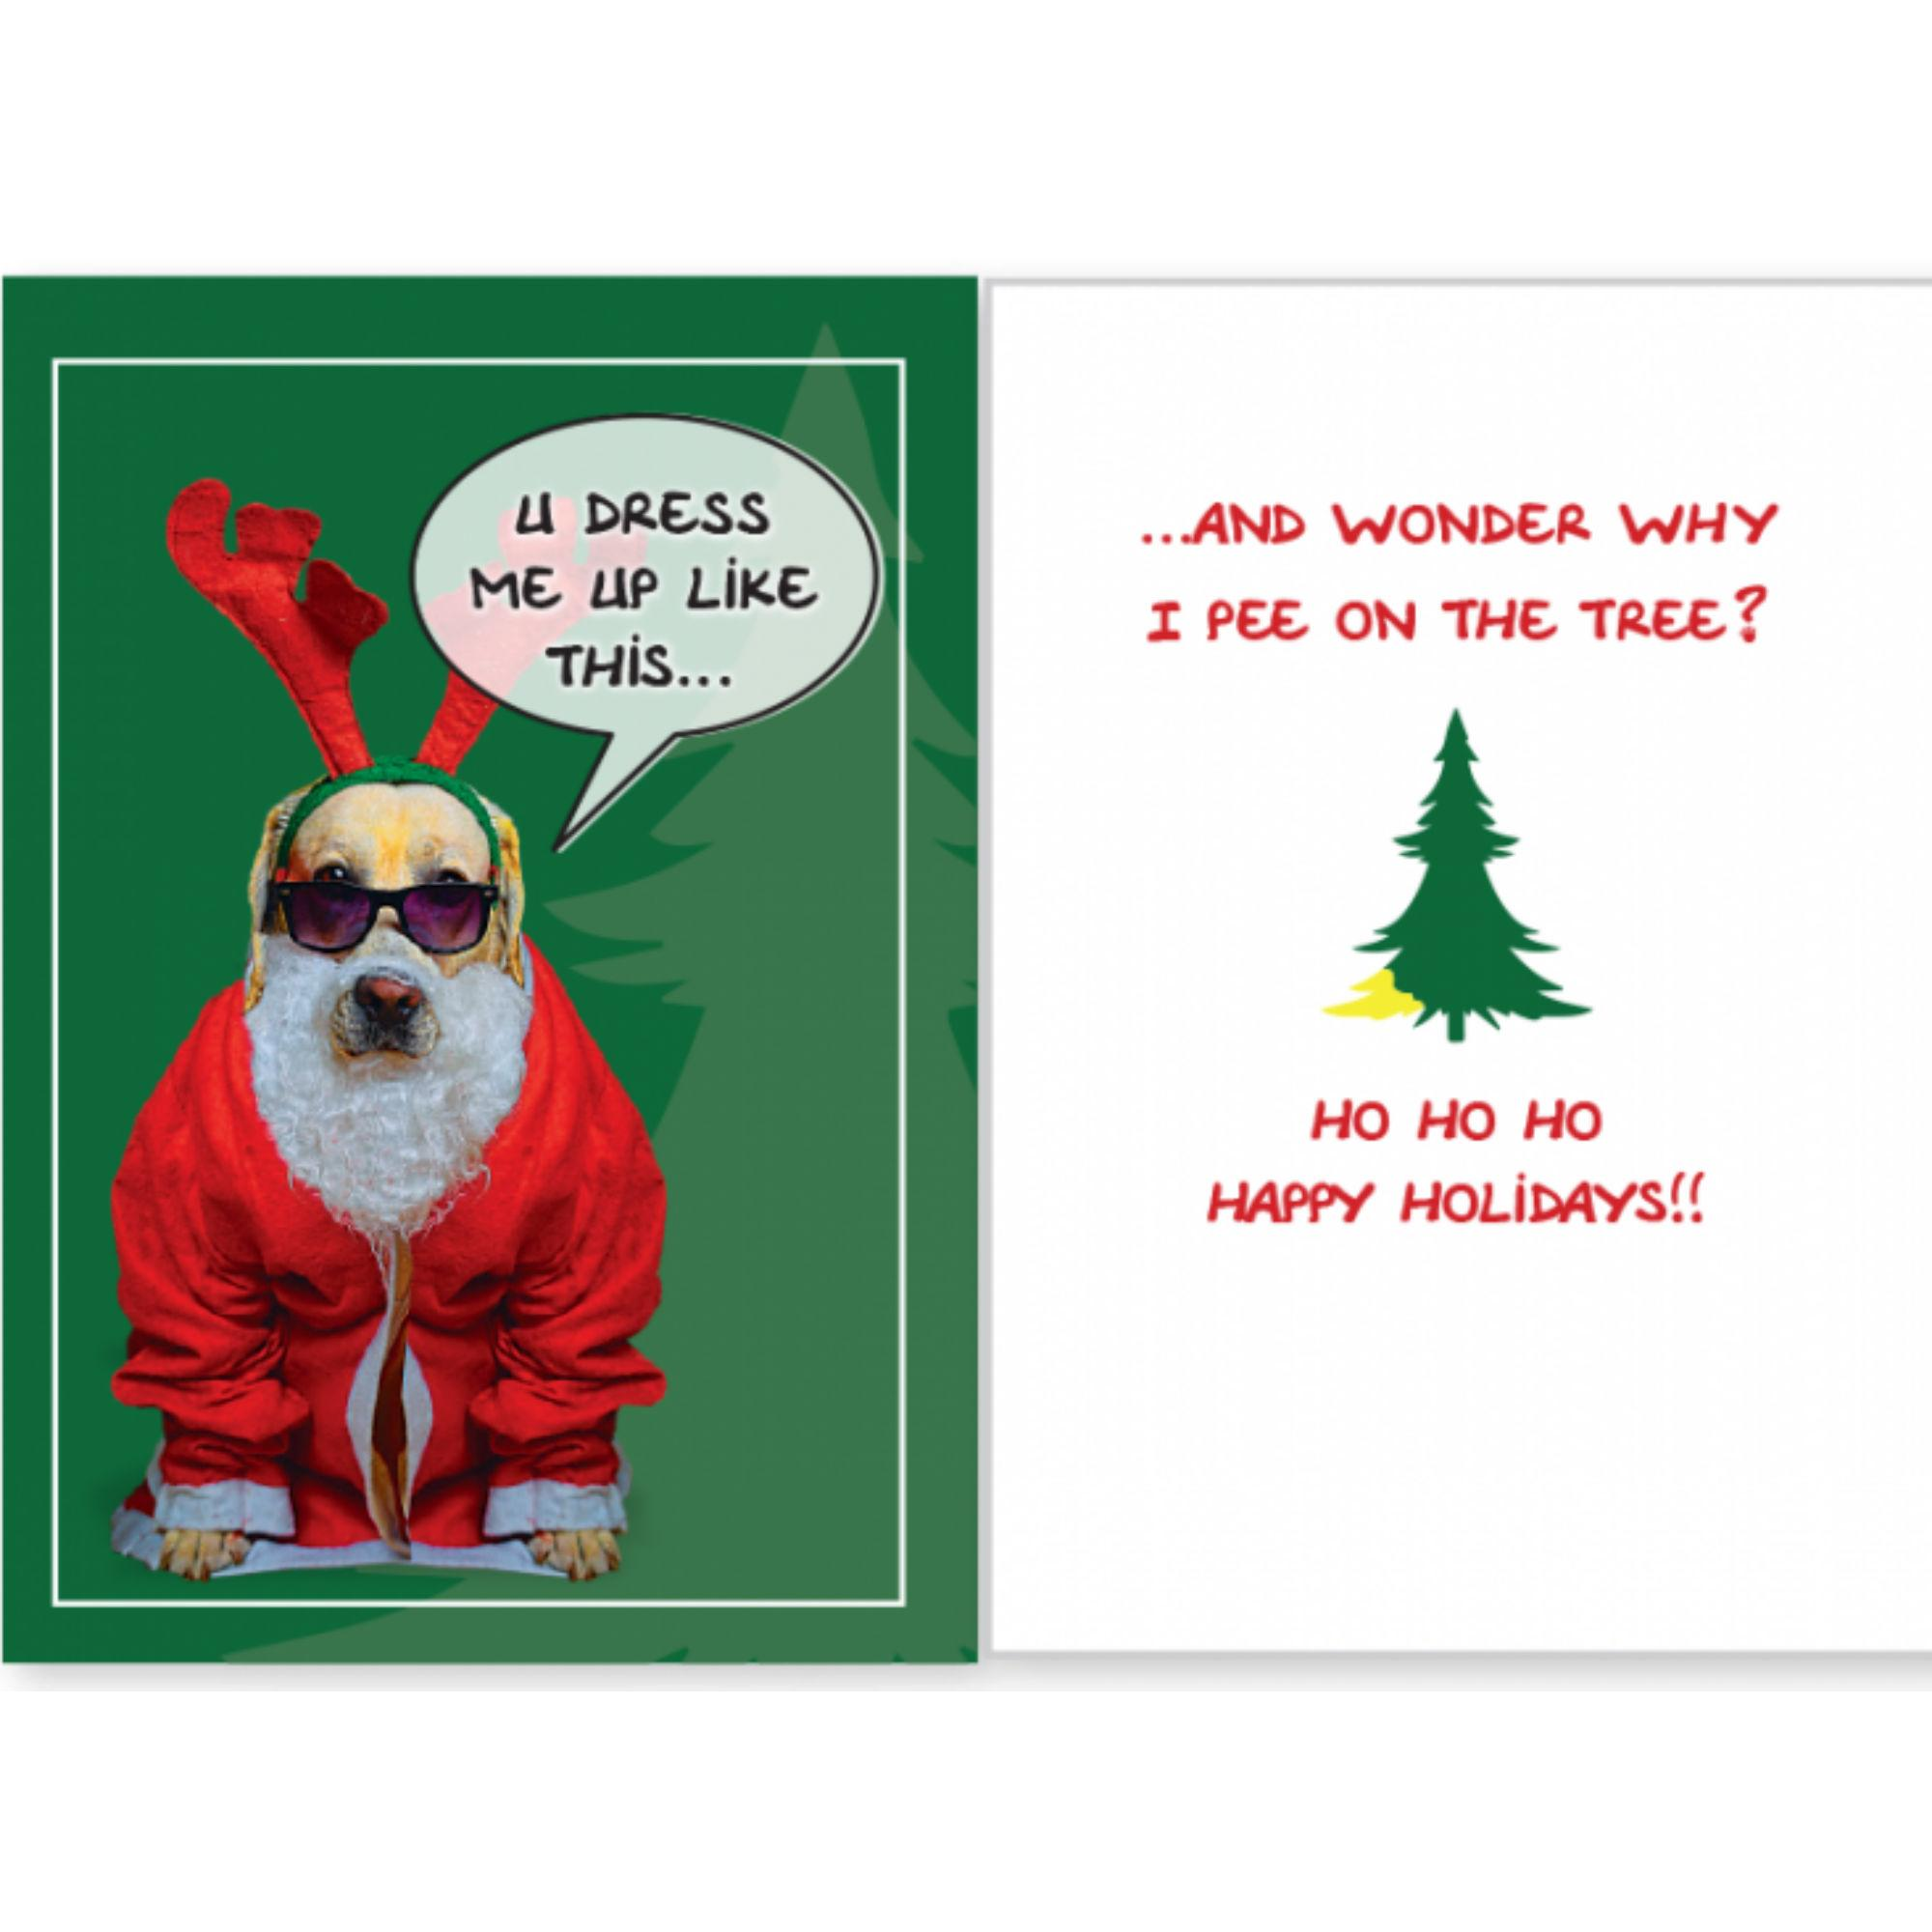 Dog Speak Dog Christmas Card - You Dress Me U... | BaxterBoo